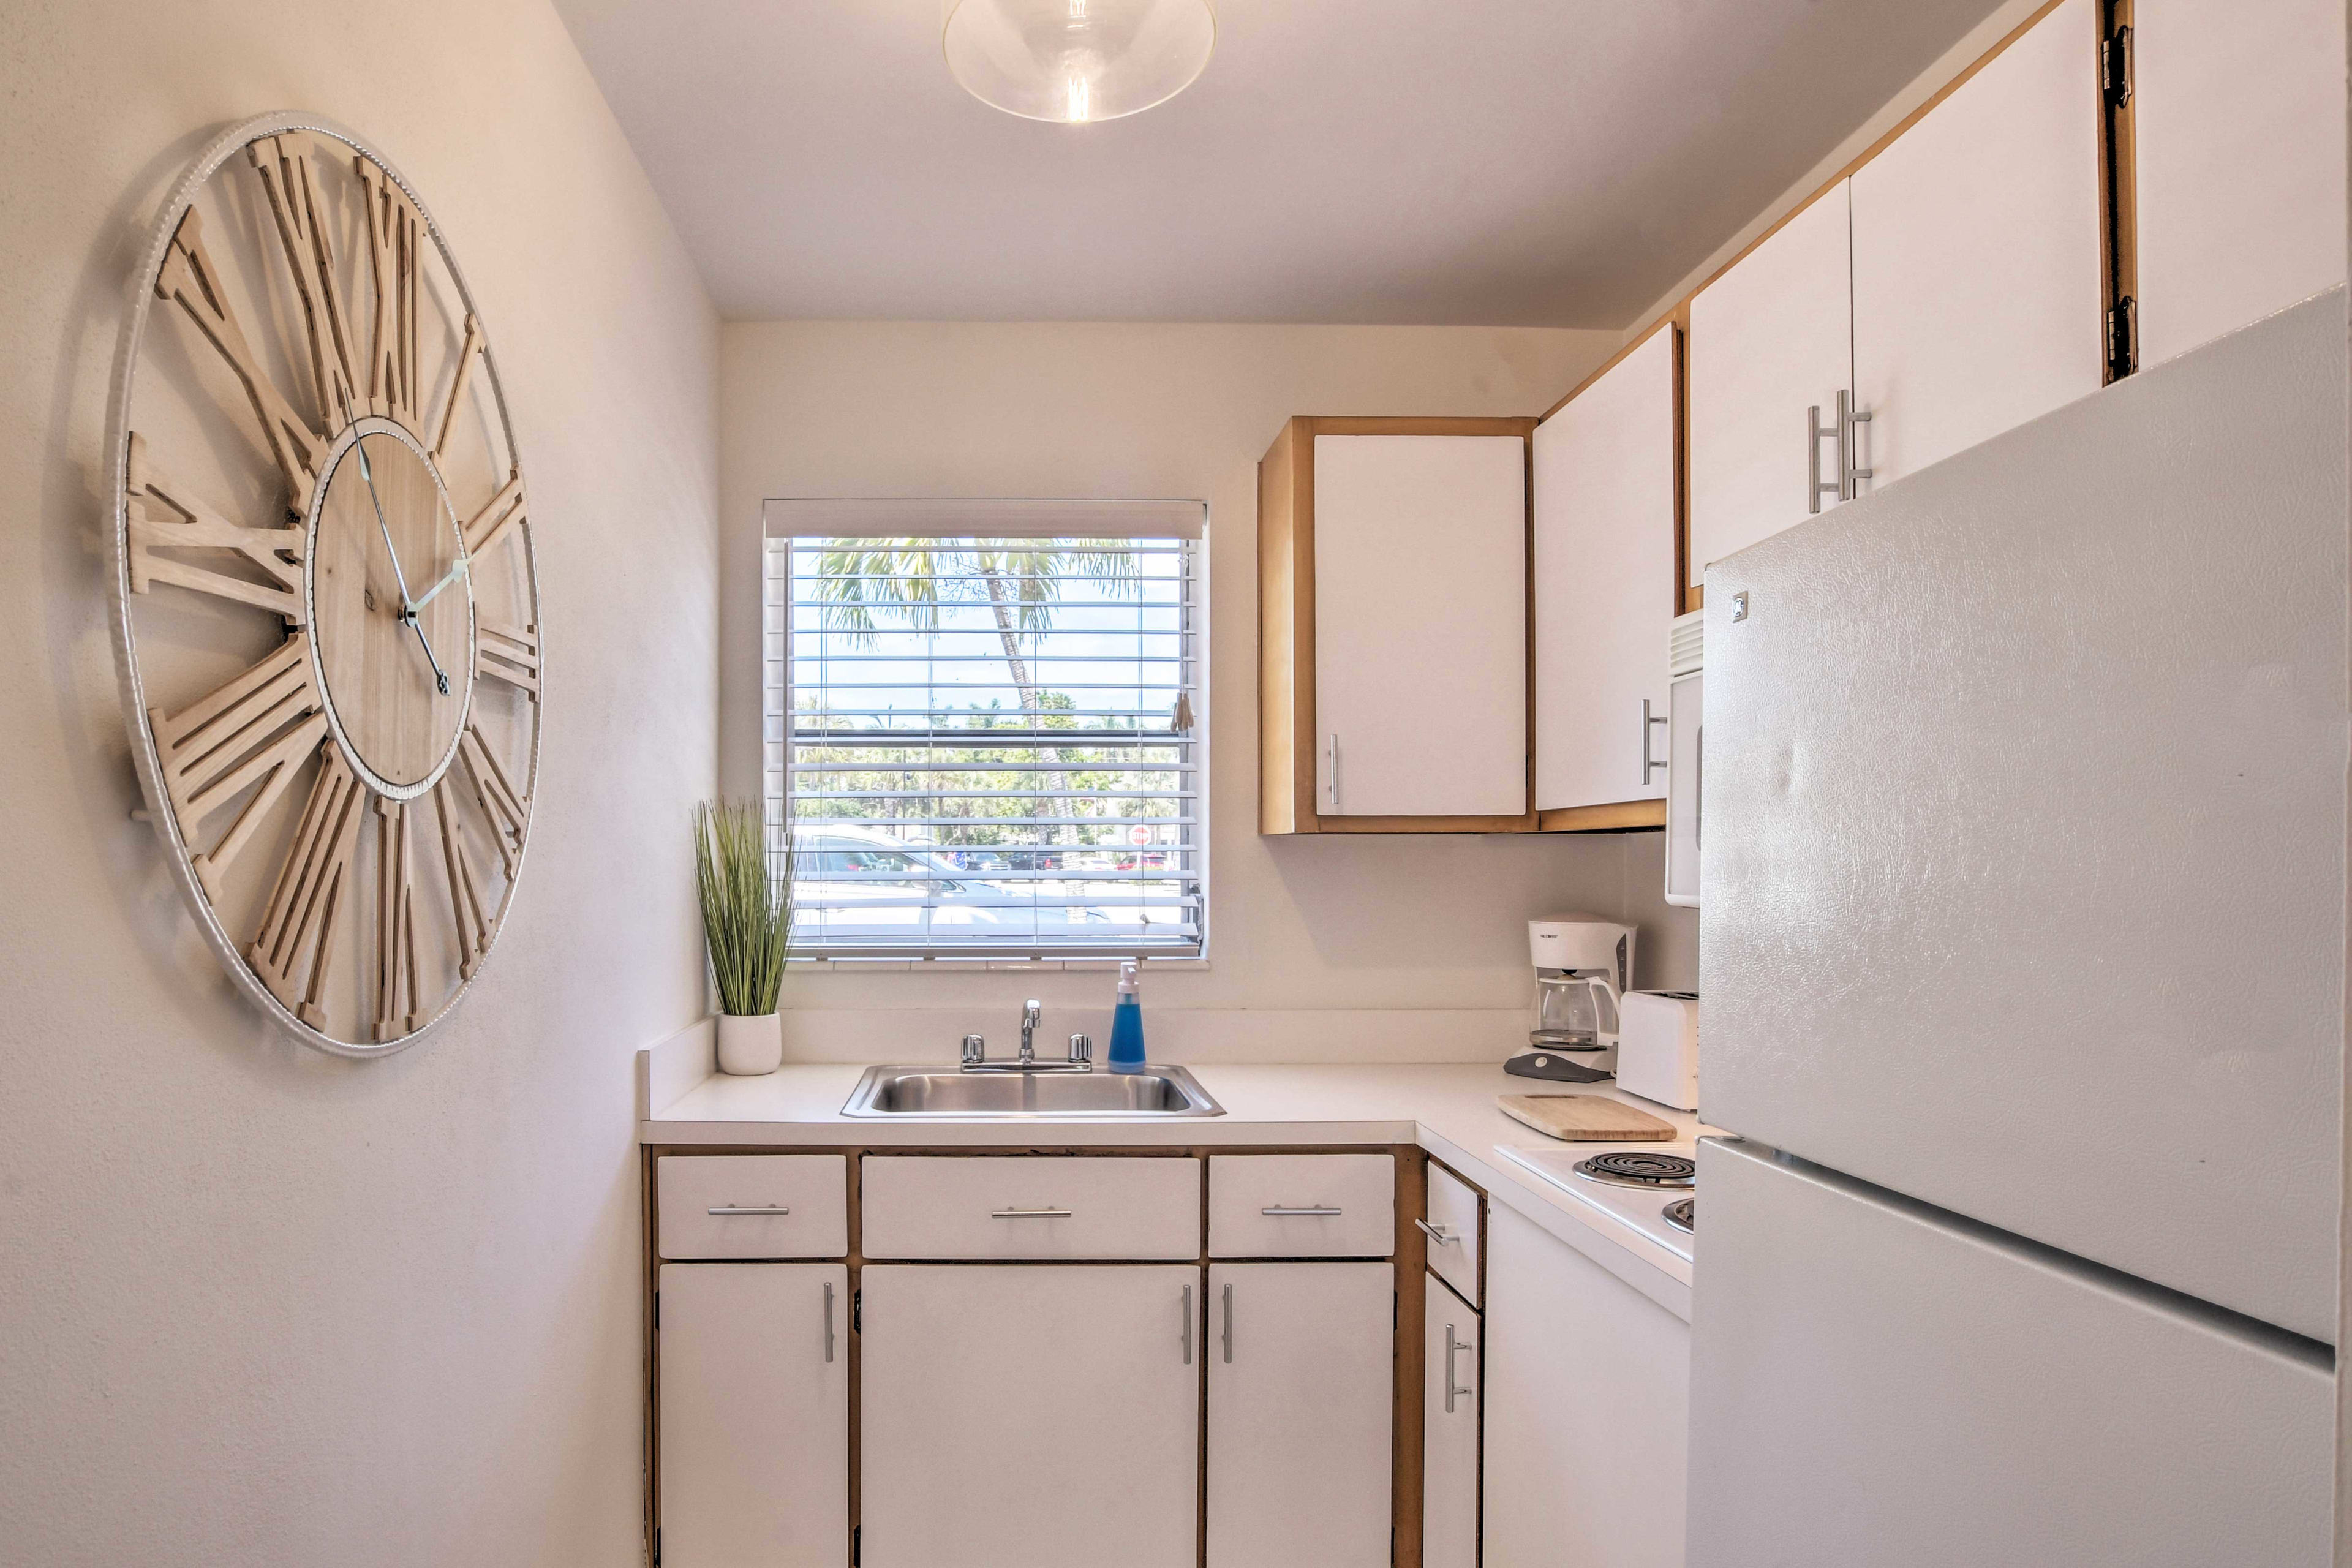 The kitchen comes well equipped with full-sized appliances.